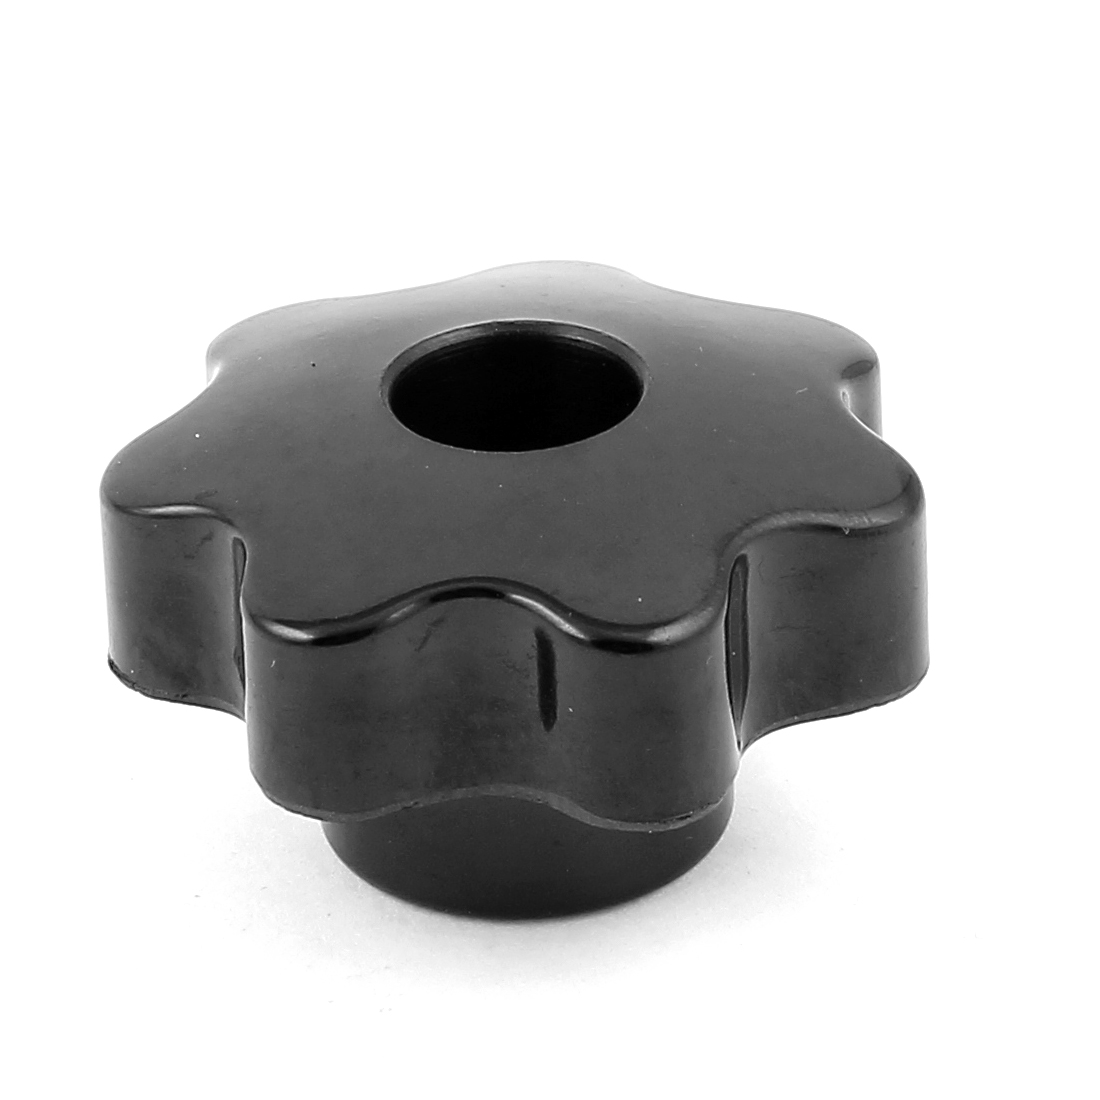 M7x32mm Diameter Thread Hole Black Star Head Clamping Knob Replacement